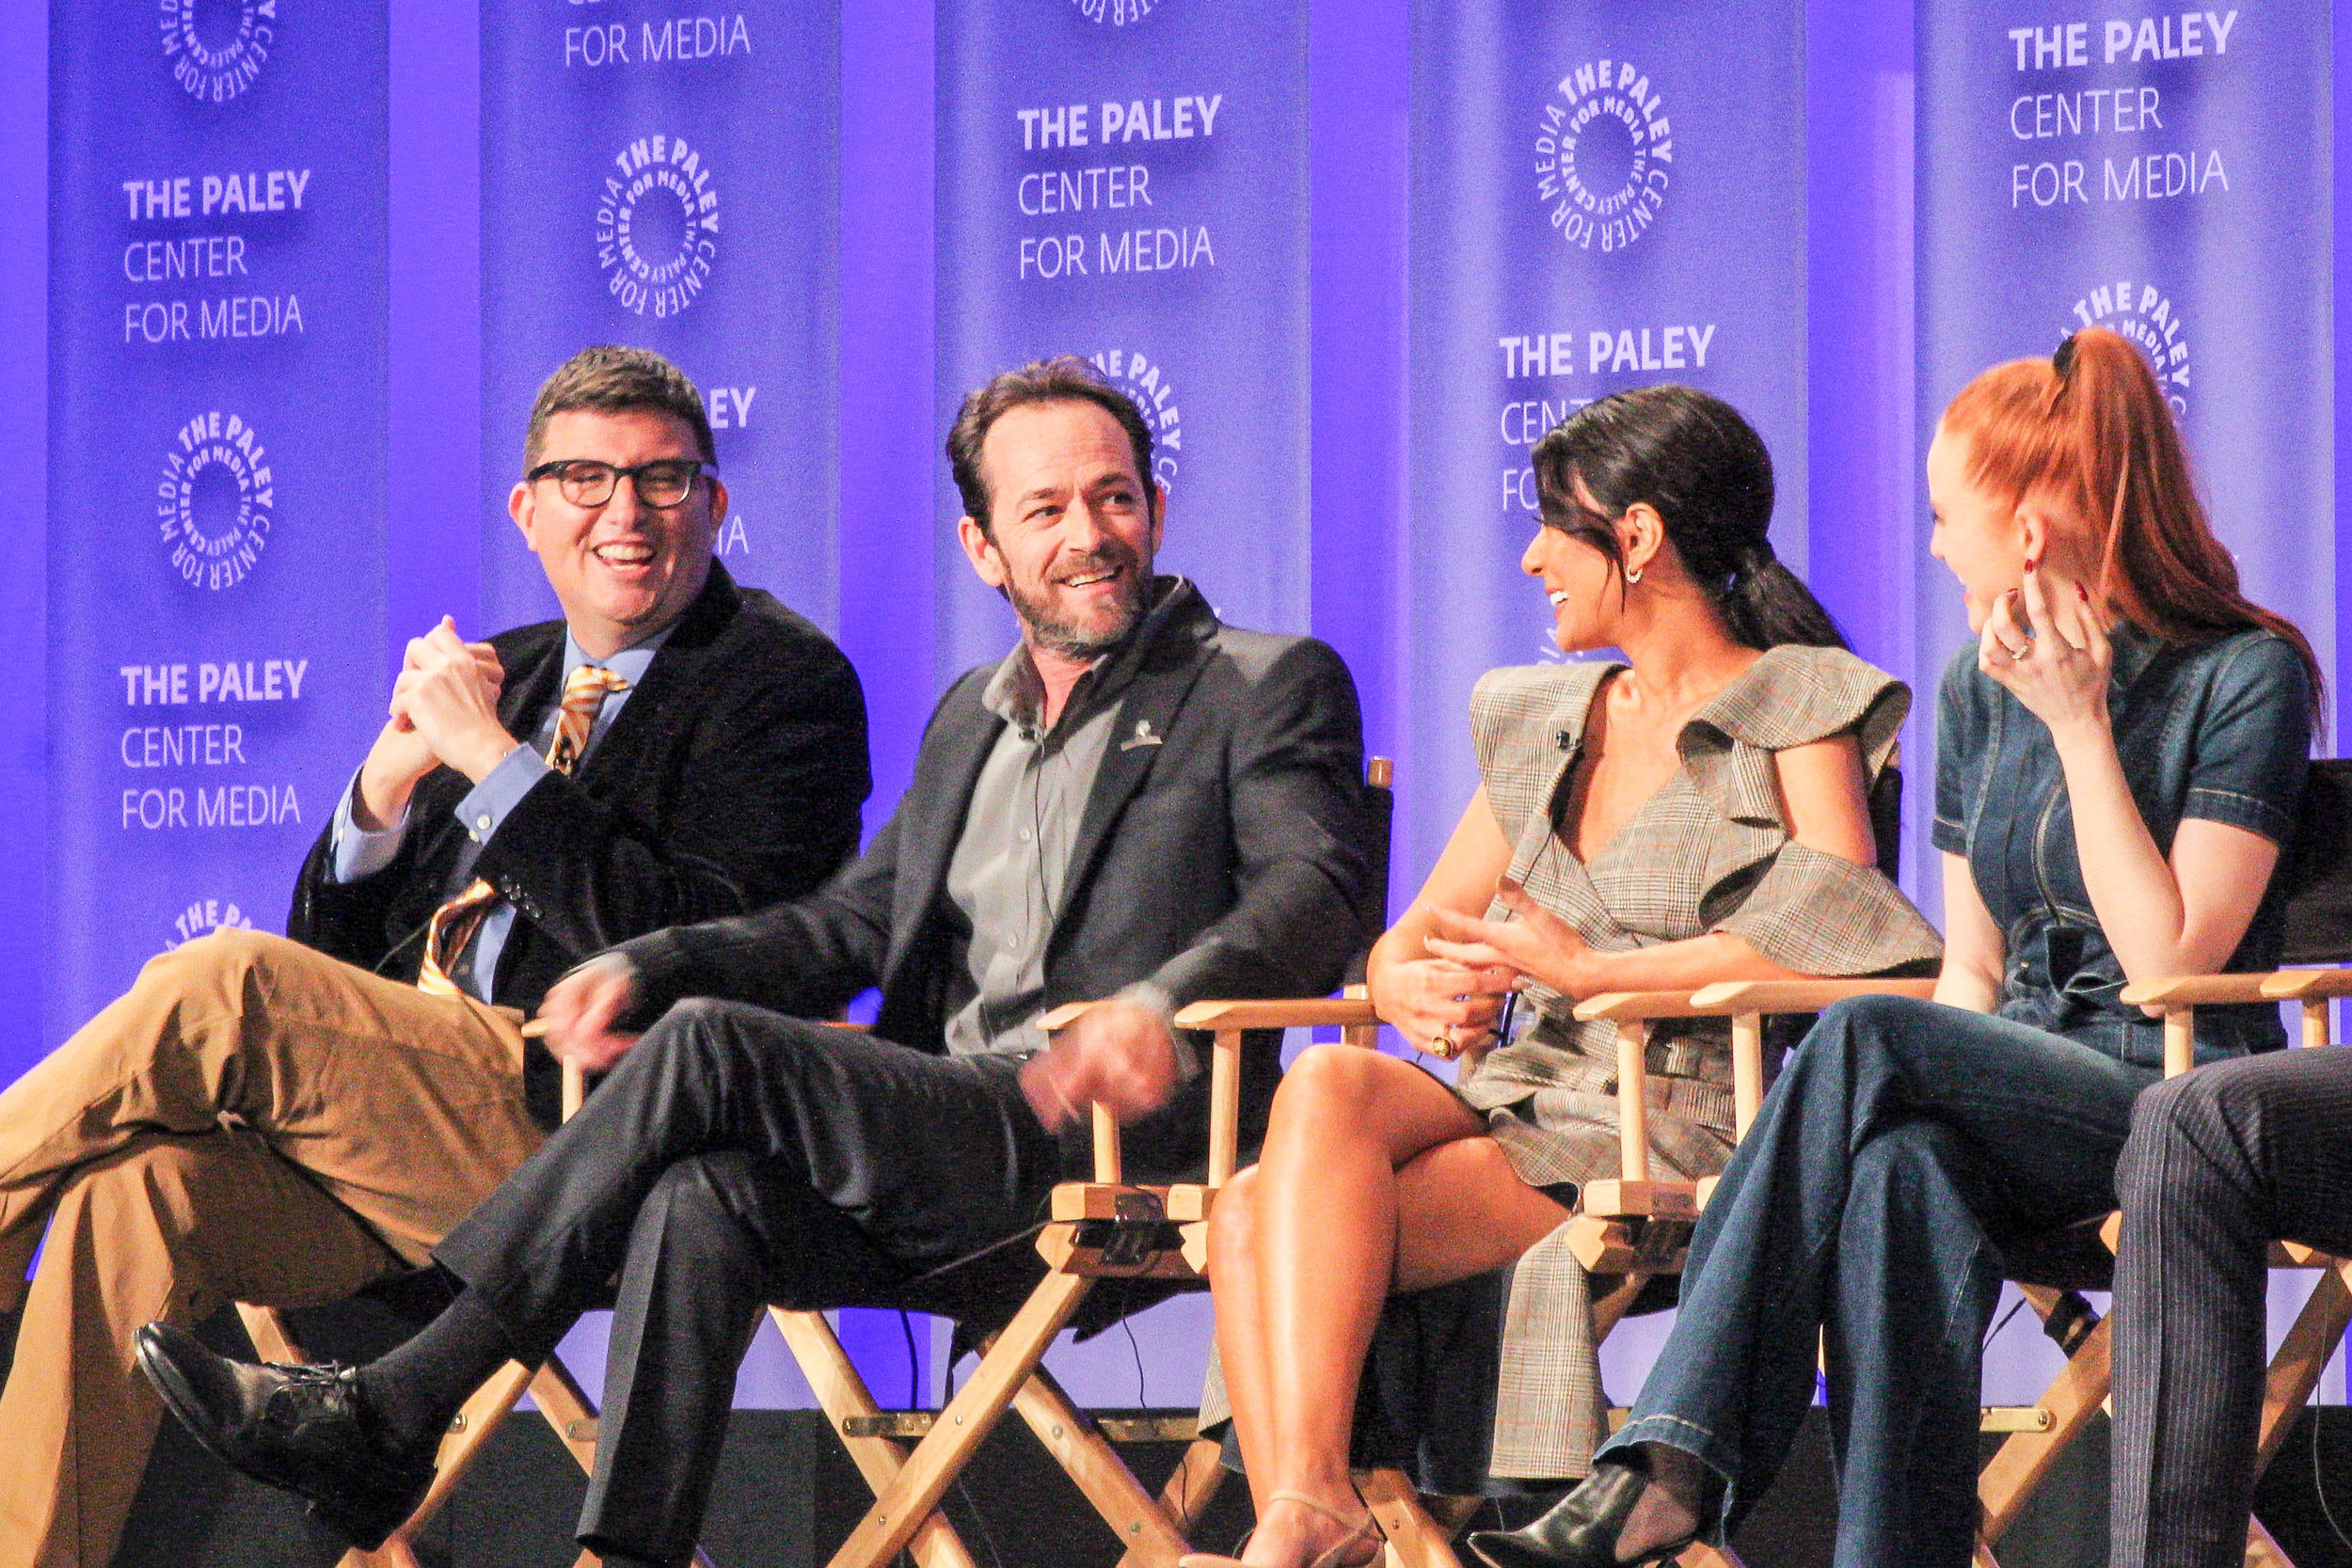 from left to right: Roberto Aguirre-Sacasa (show runner and executive producer), luke perry (fred), Marisol Nichols (Hermione), Madelaine Petsch (Cheryl)